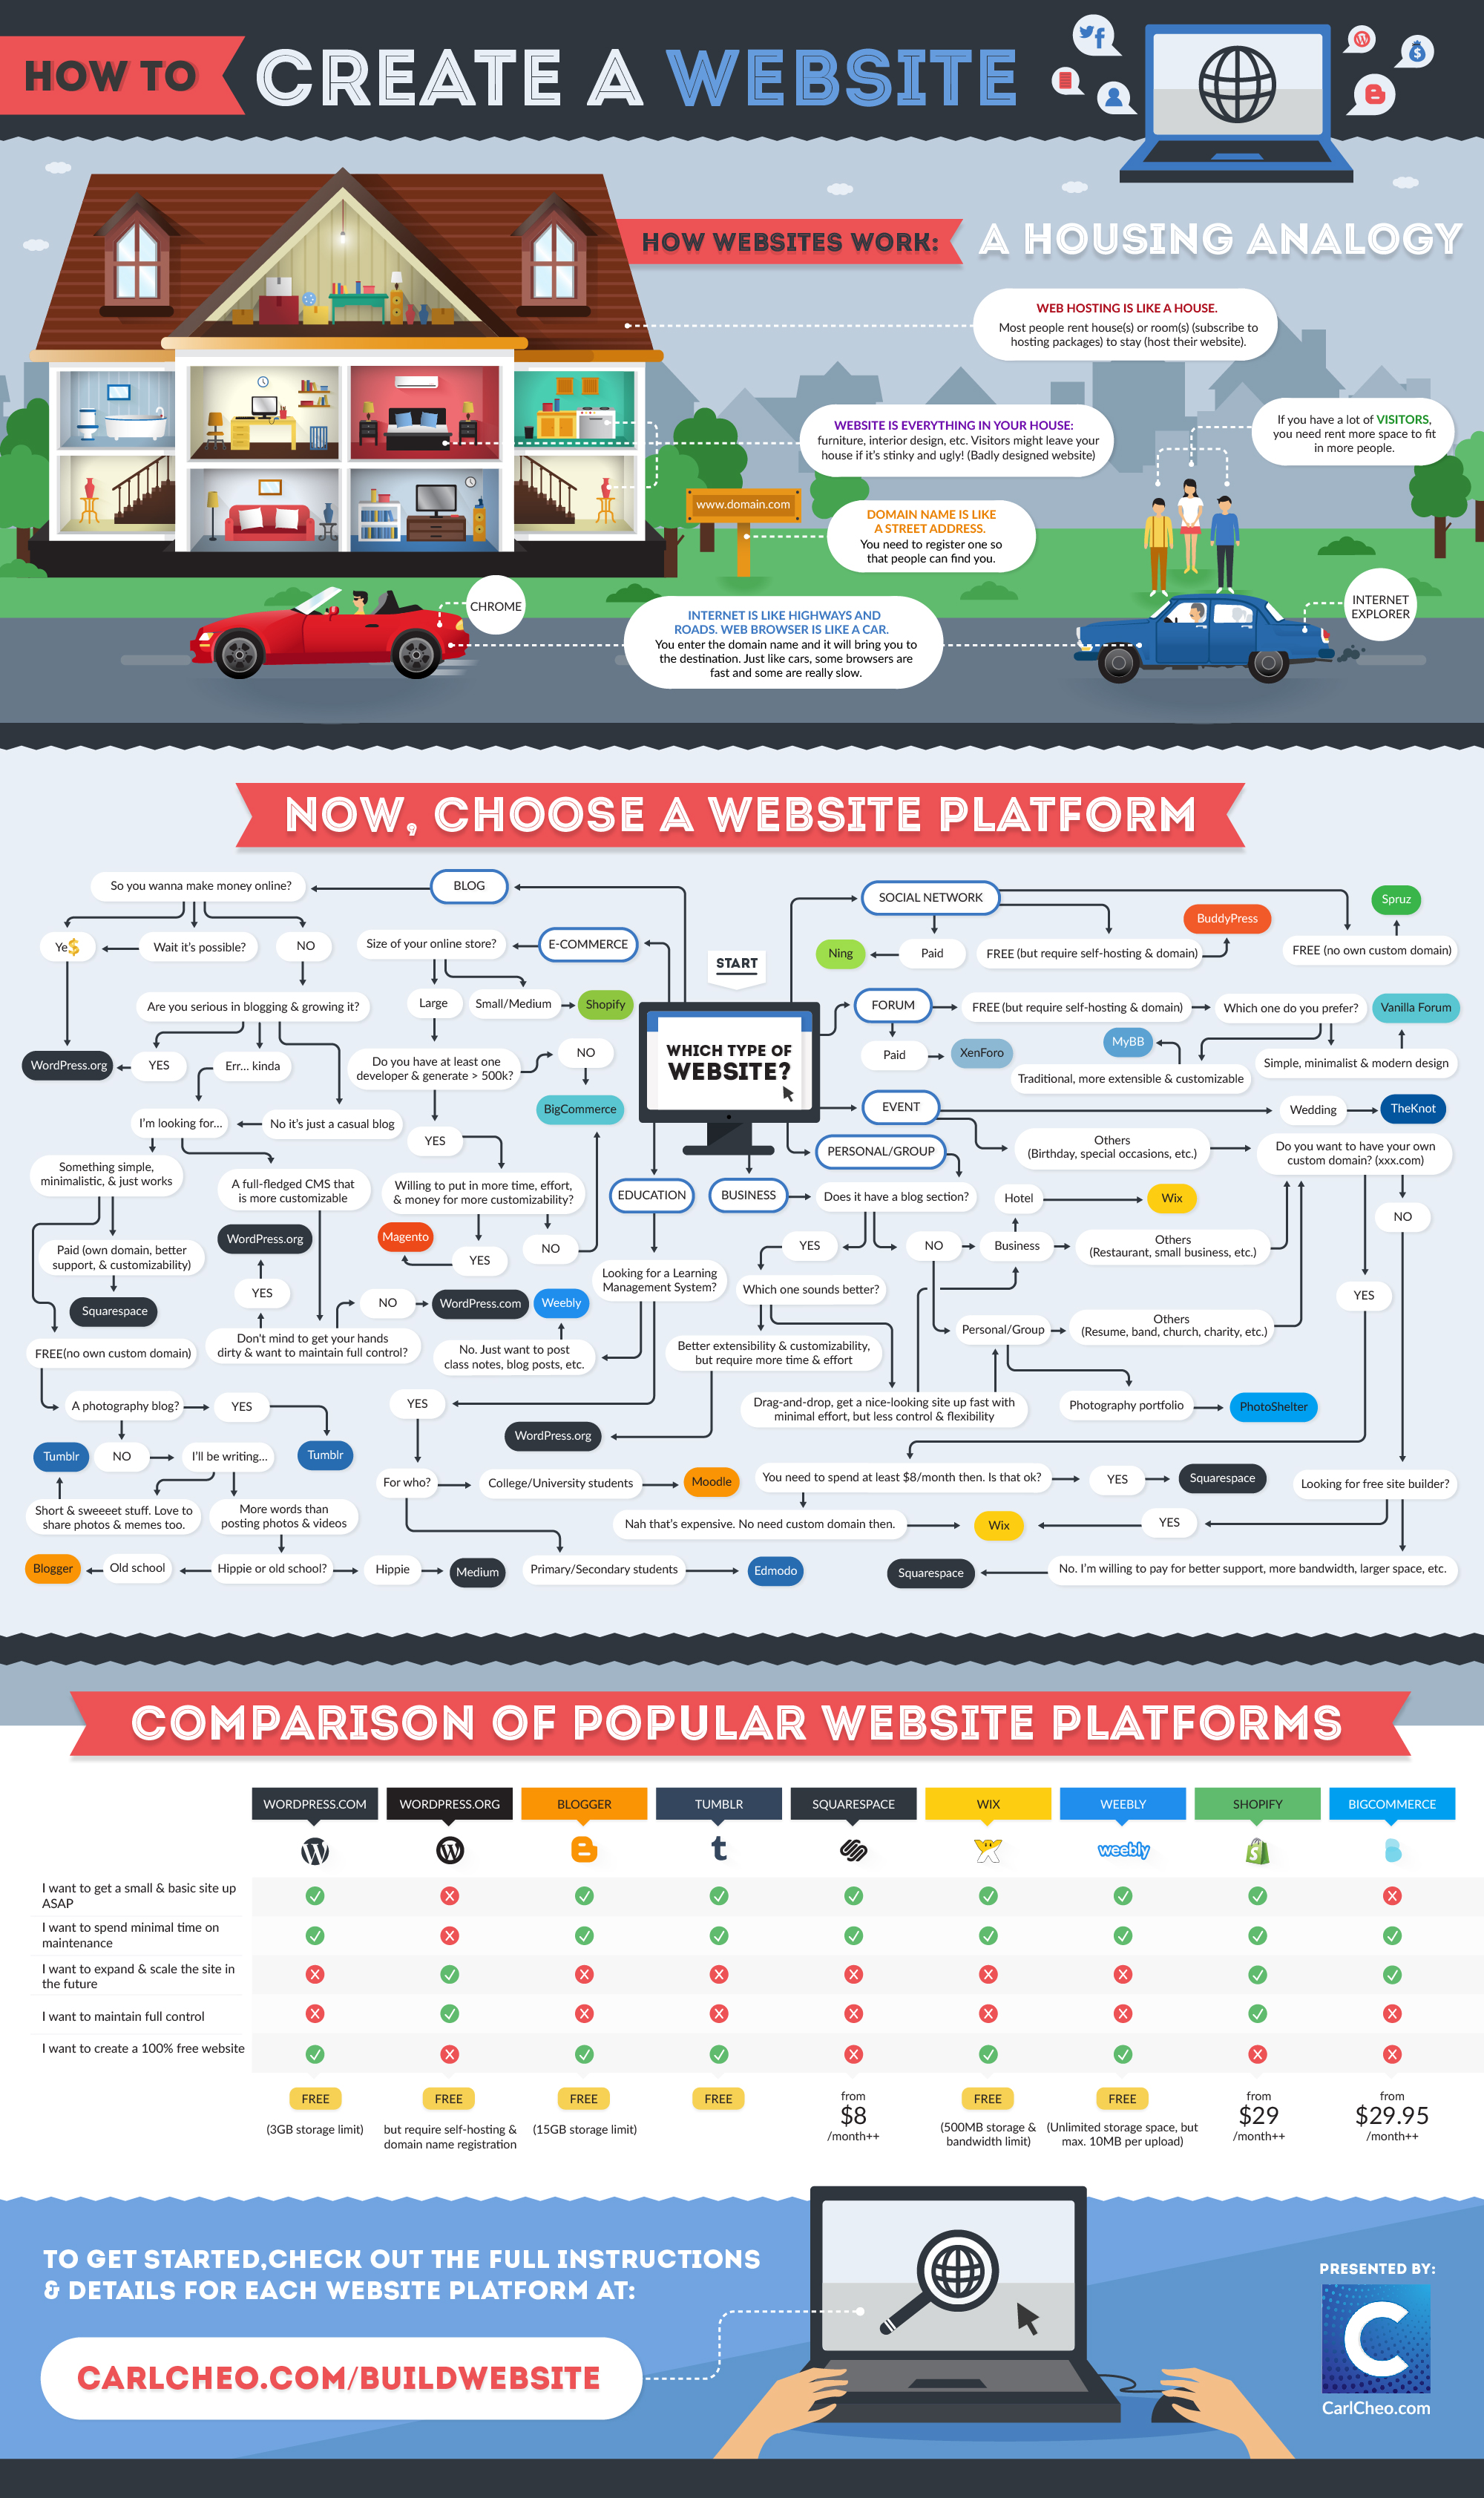 A beginner's guide to creating a website (Infographic)